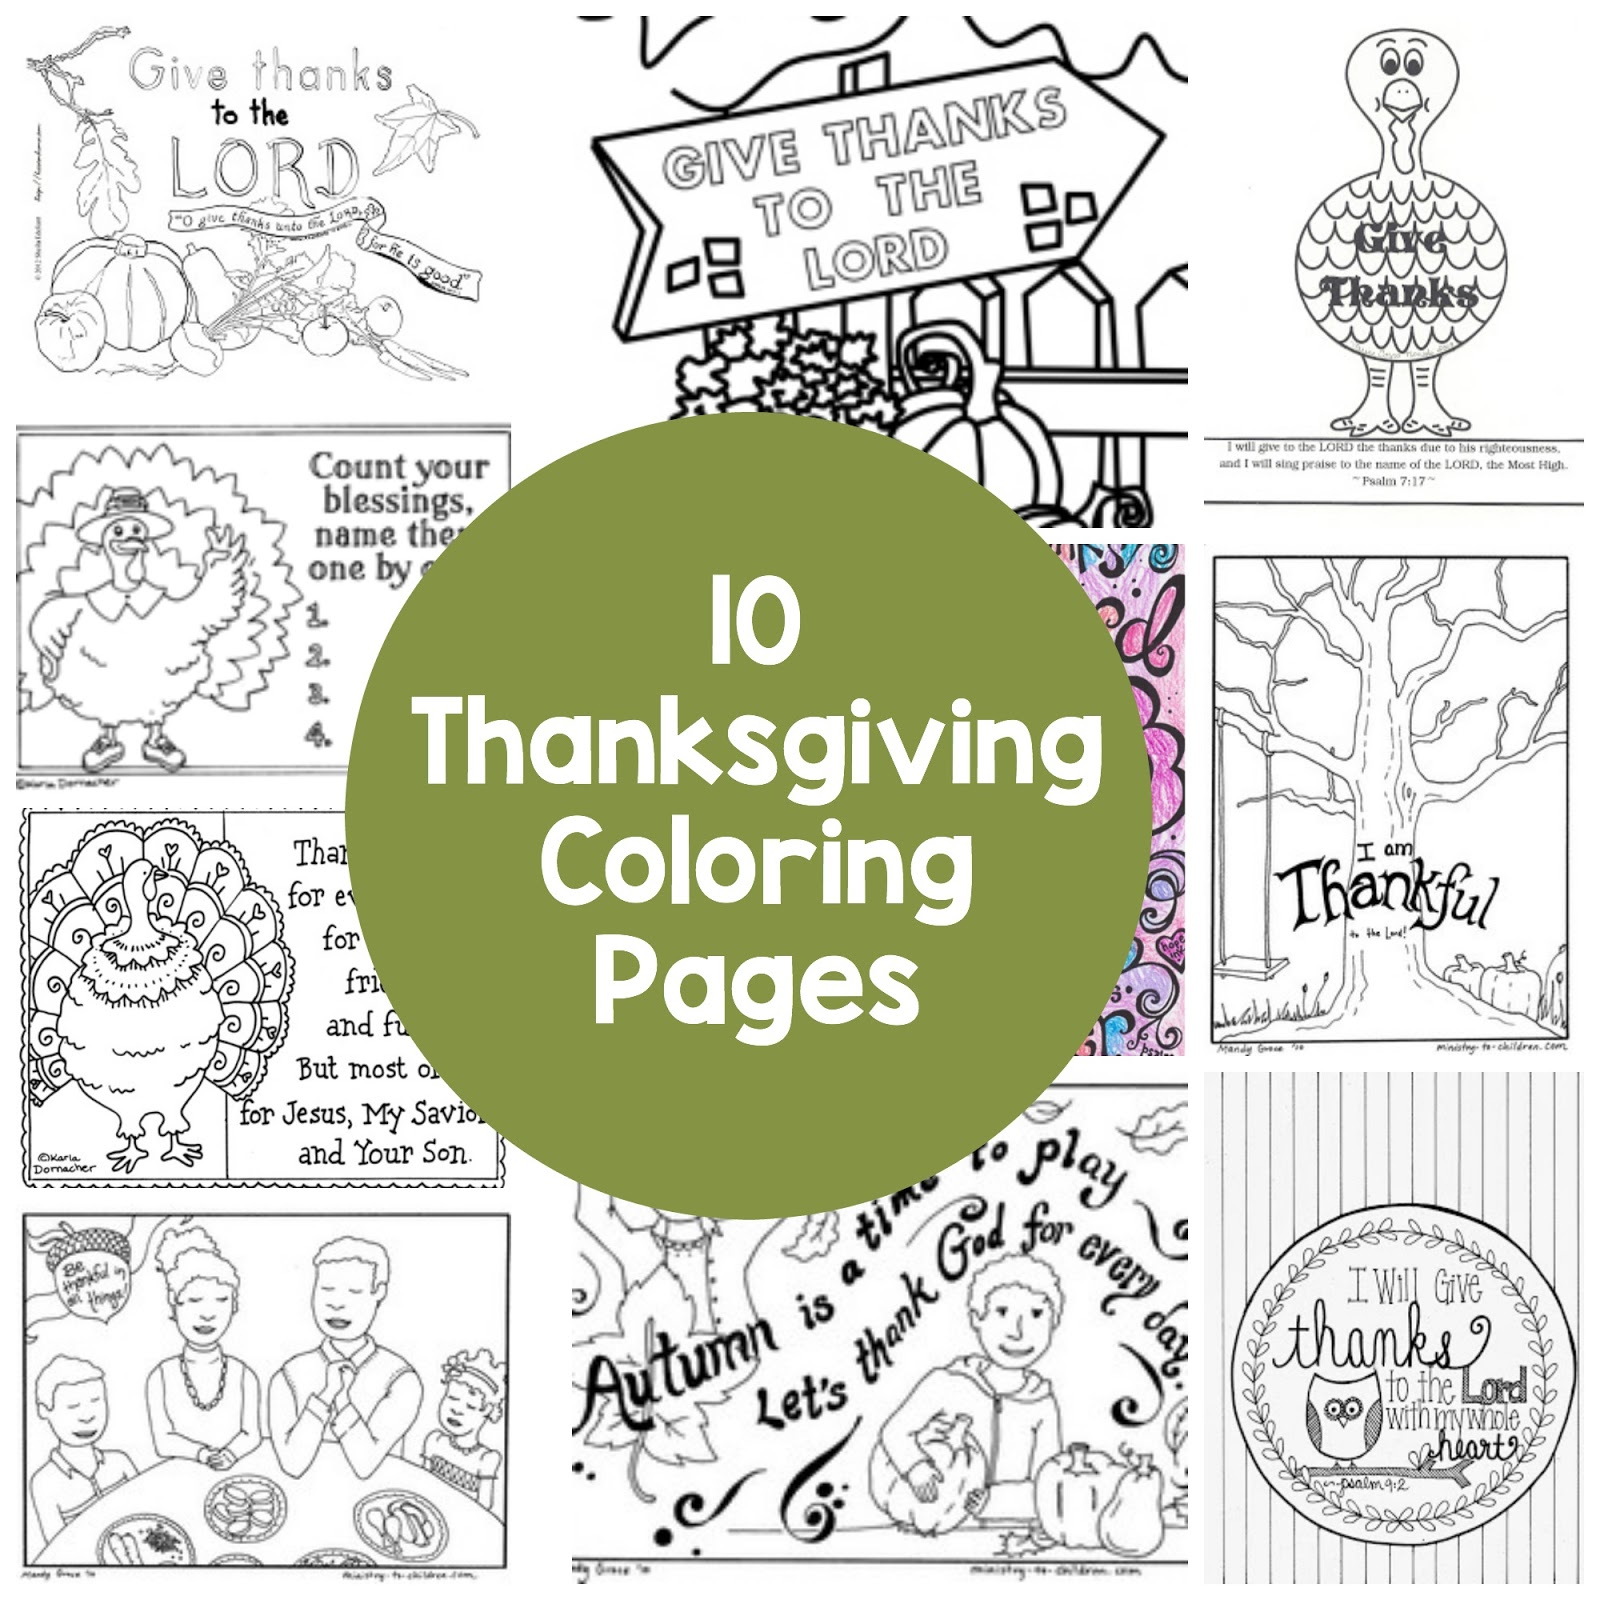 10 Thanksgiving Coloring Pages - Short and Sweet | Humble Hearts